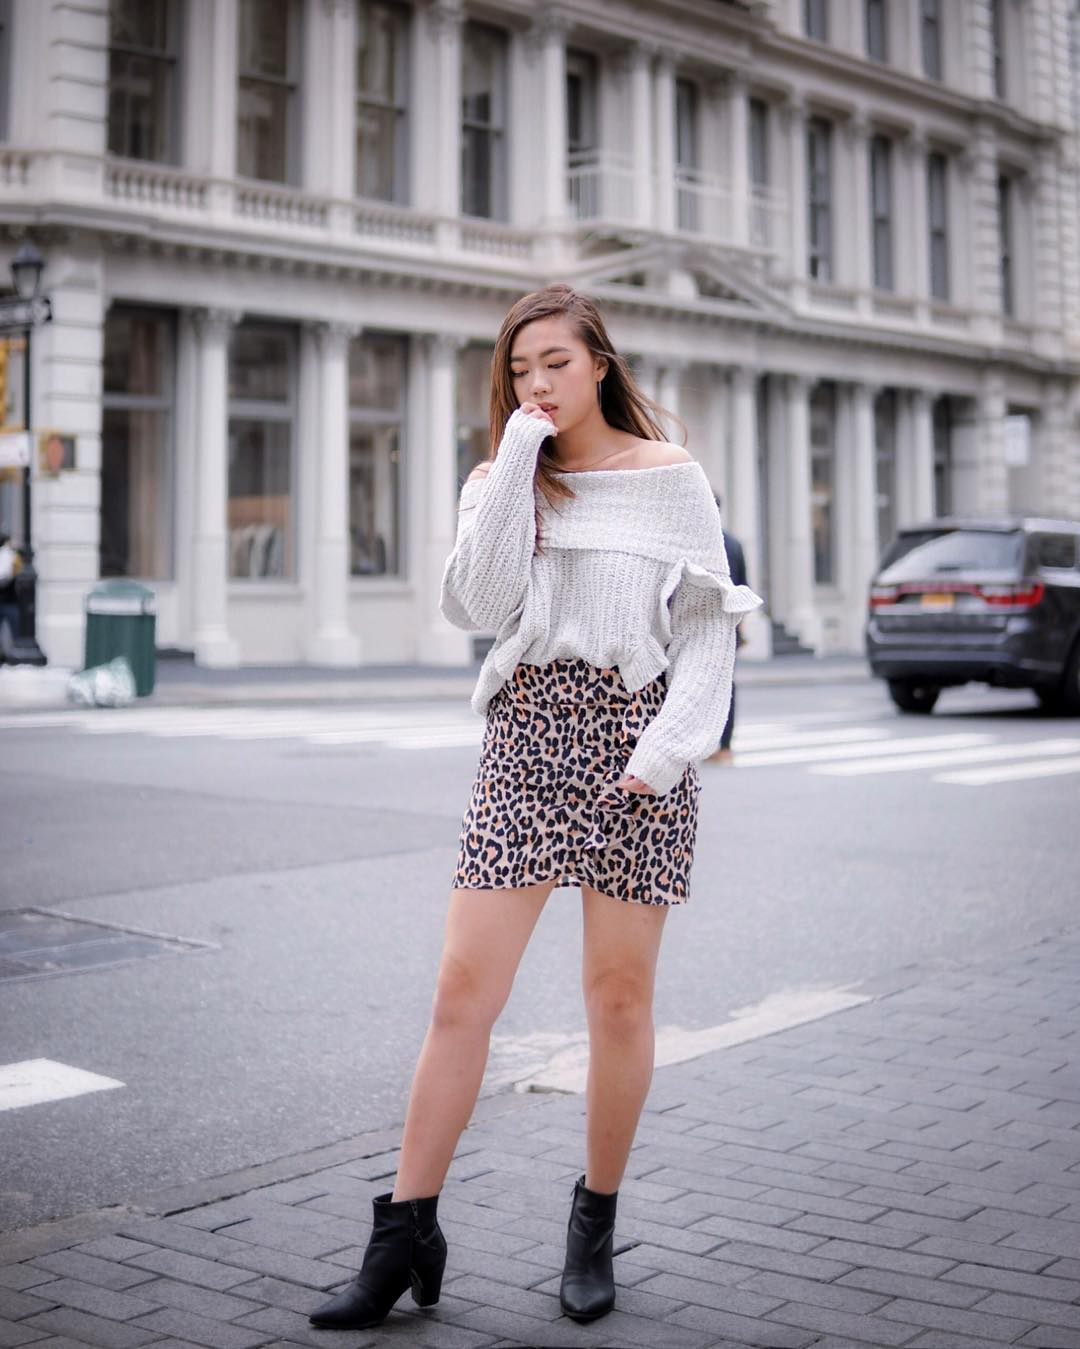 Off shoulder cream gray sweater and skirt with leopard print for fall 2021